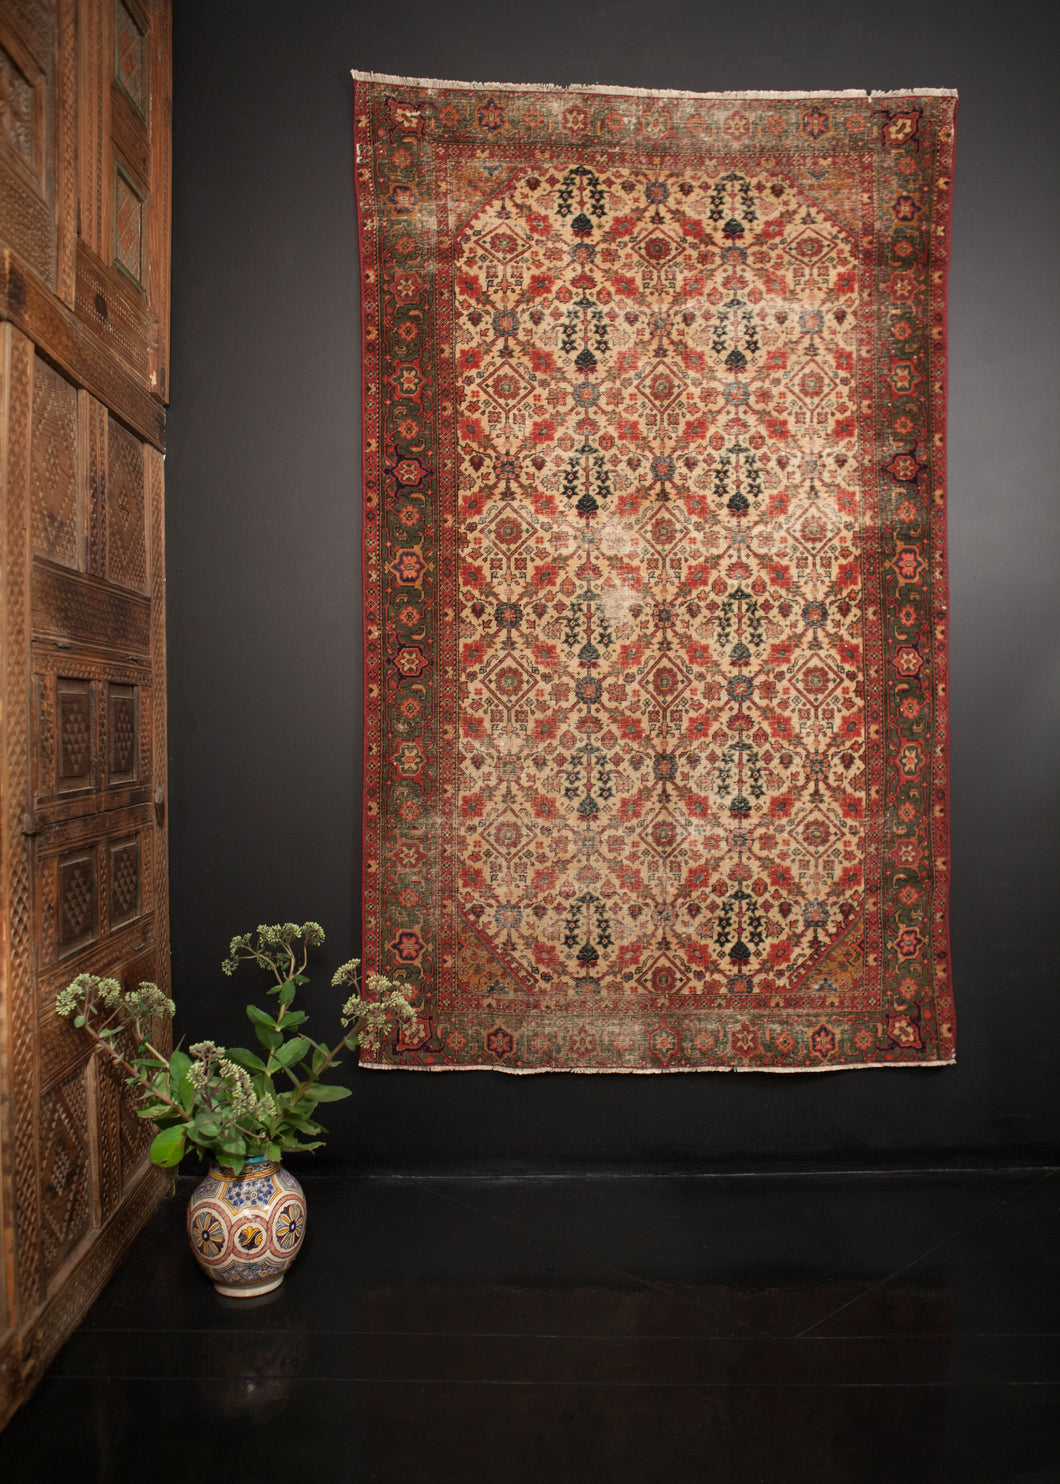 Agra rug handwoven in the early 20th century. Distinct emerald and scarlet border frame an ivory field with shades of blue and pink.